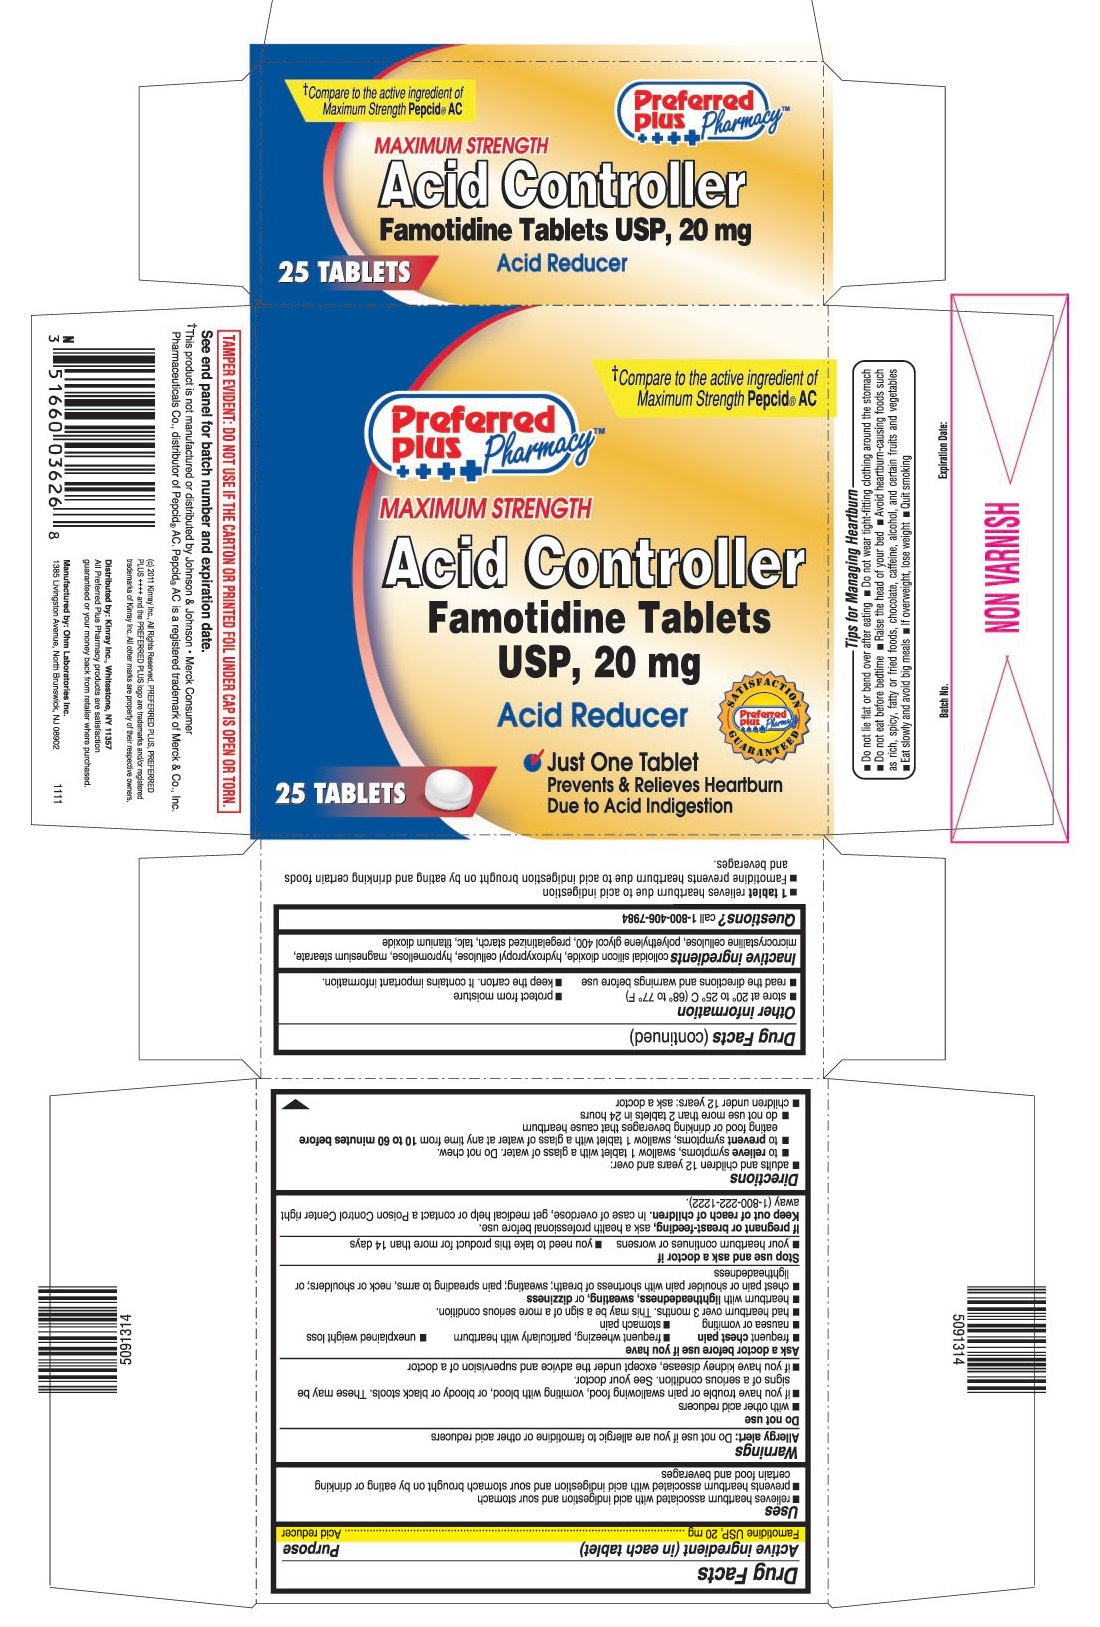 This is the 25 count blister carton label for Preferred Plus Famotidine tablets USP, 20 mg.